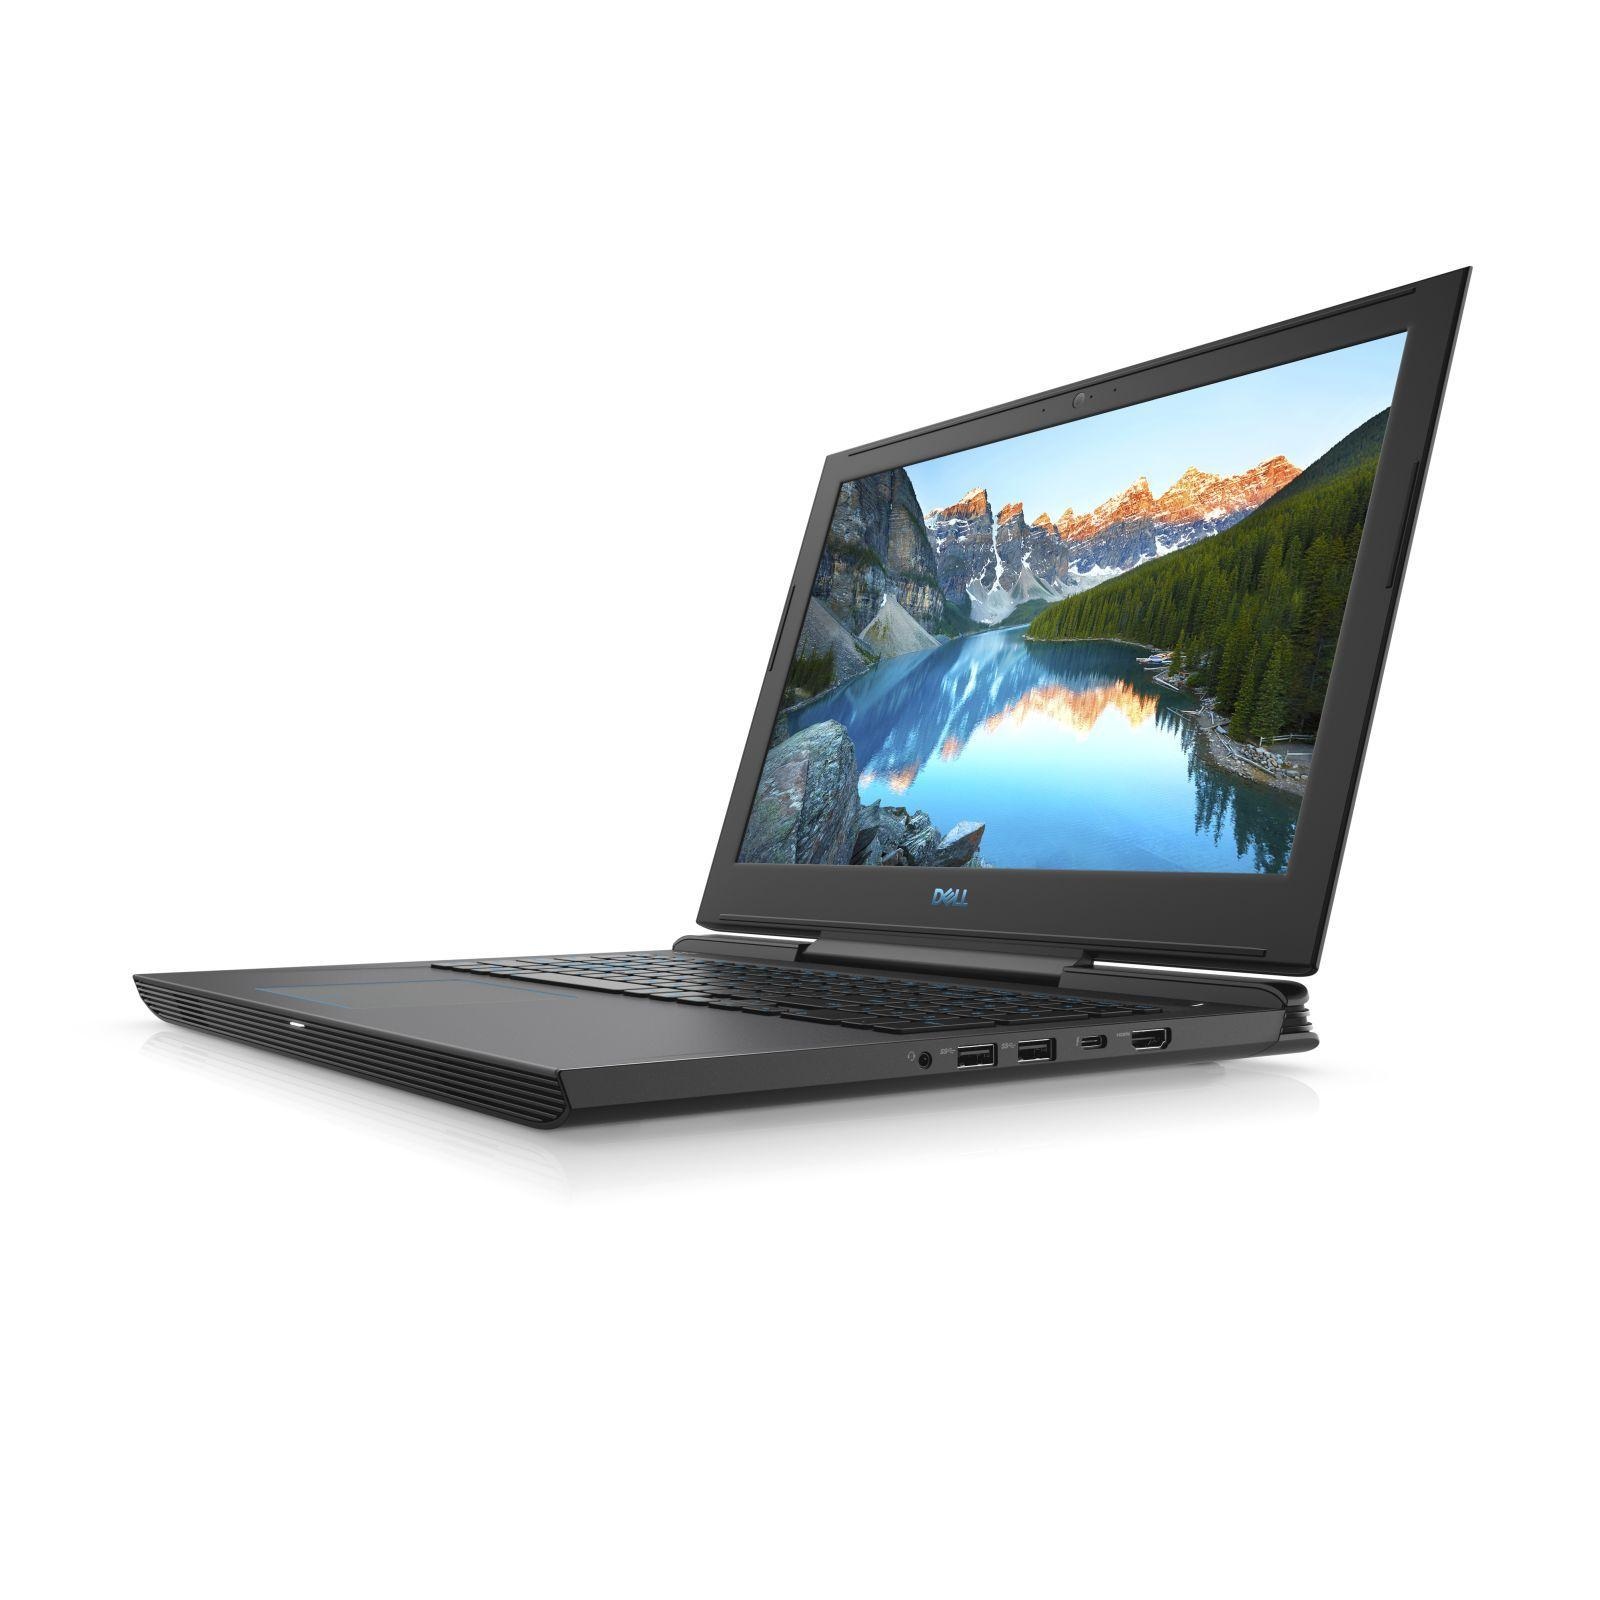 DELL G7-875116GL-BLK 15.6 IN INTEL CORE I7-8750H 16GB 1TB 256GB SSD WIN 10